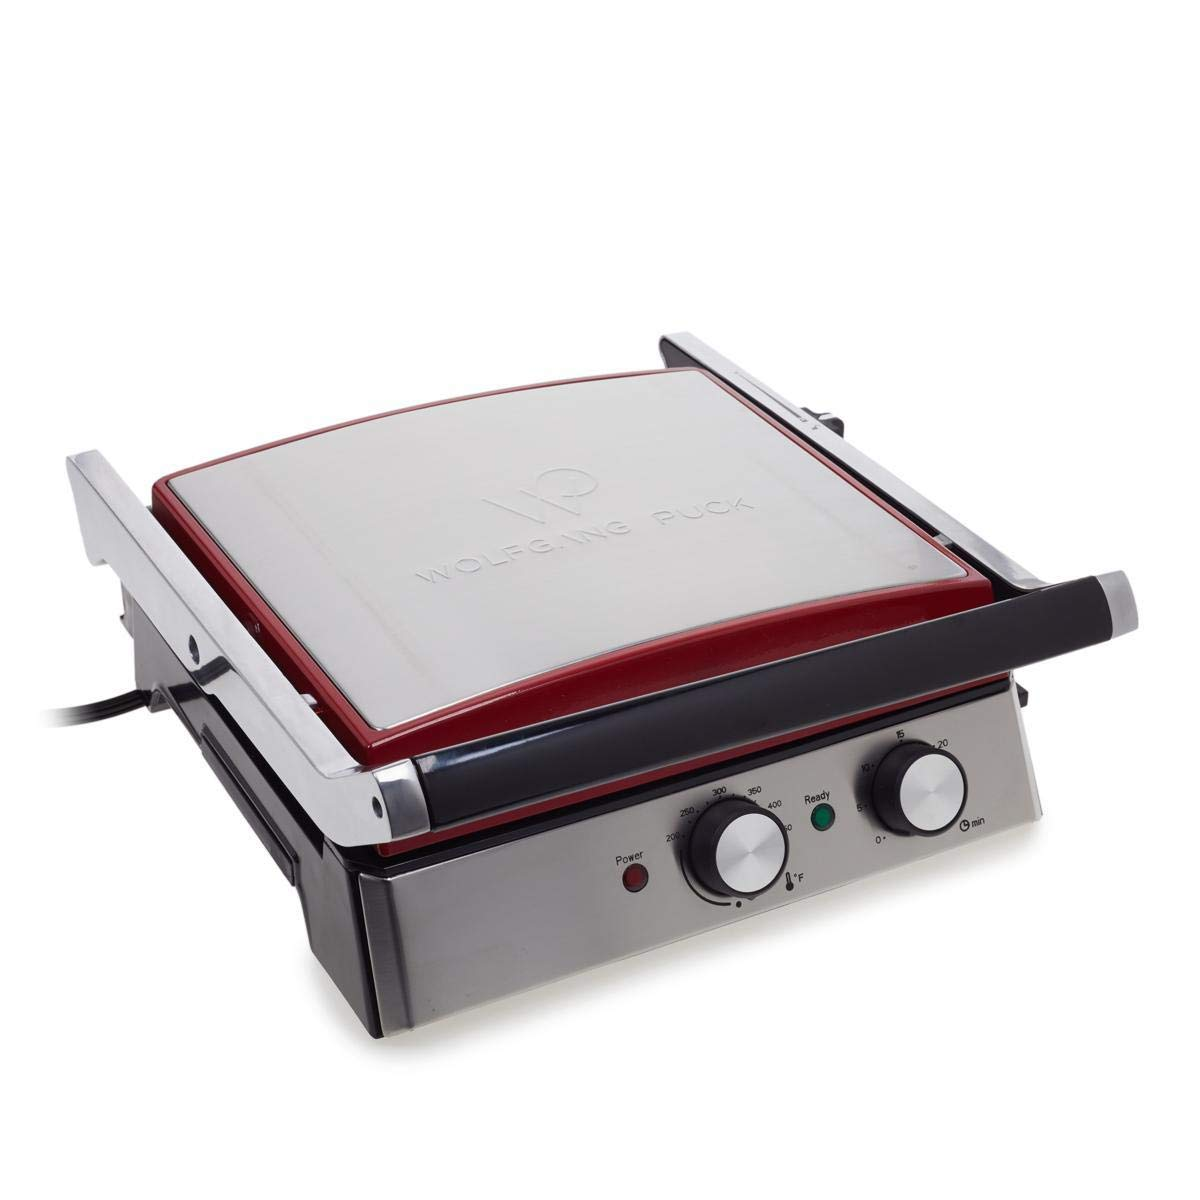 Wolfgang Puck 6-in-1 Reversible Contact Grill and Griddle w/Recipes